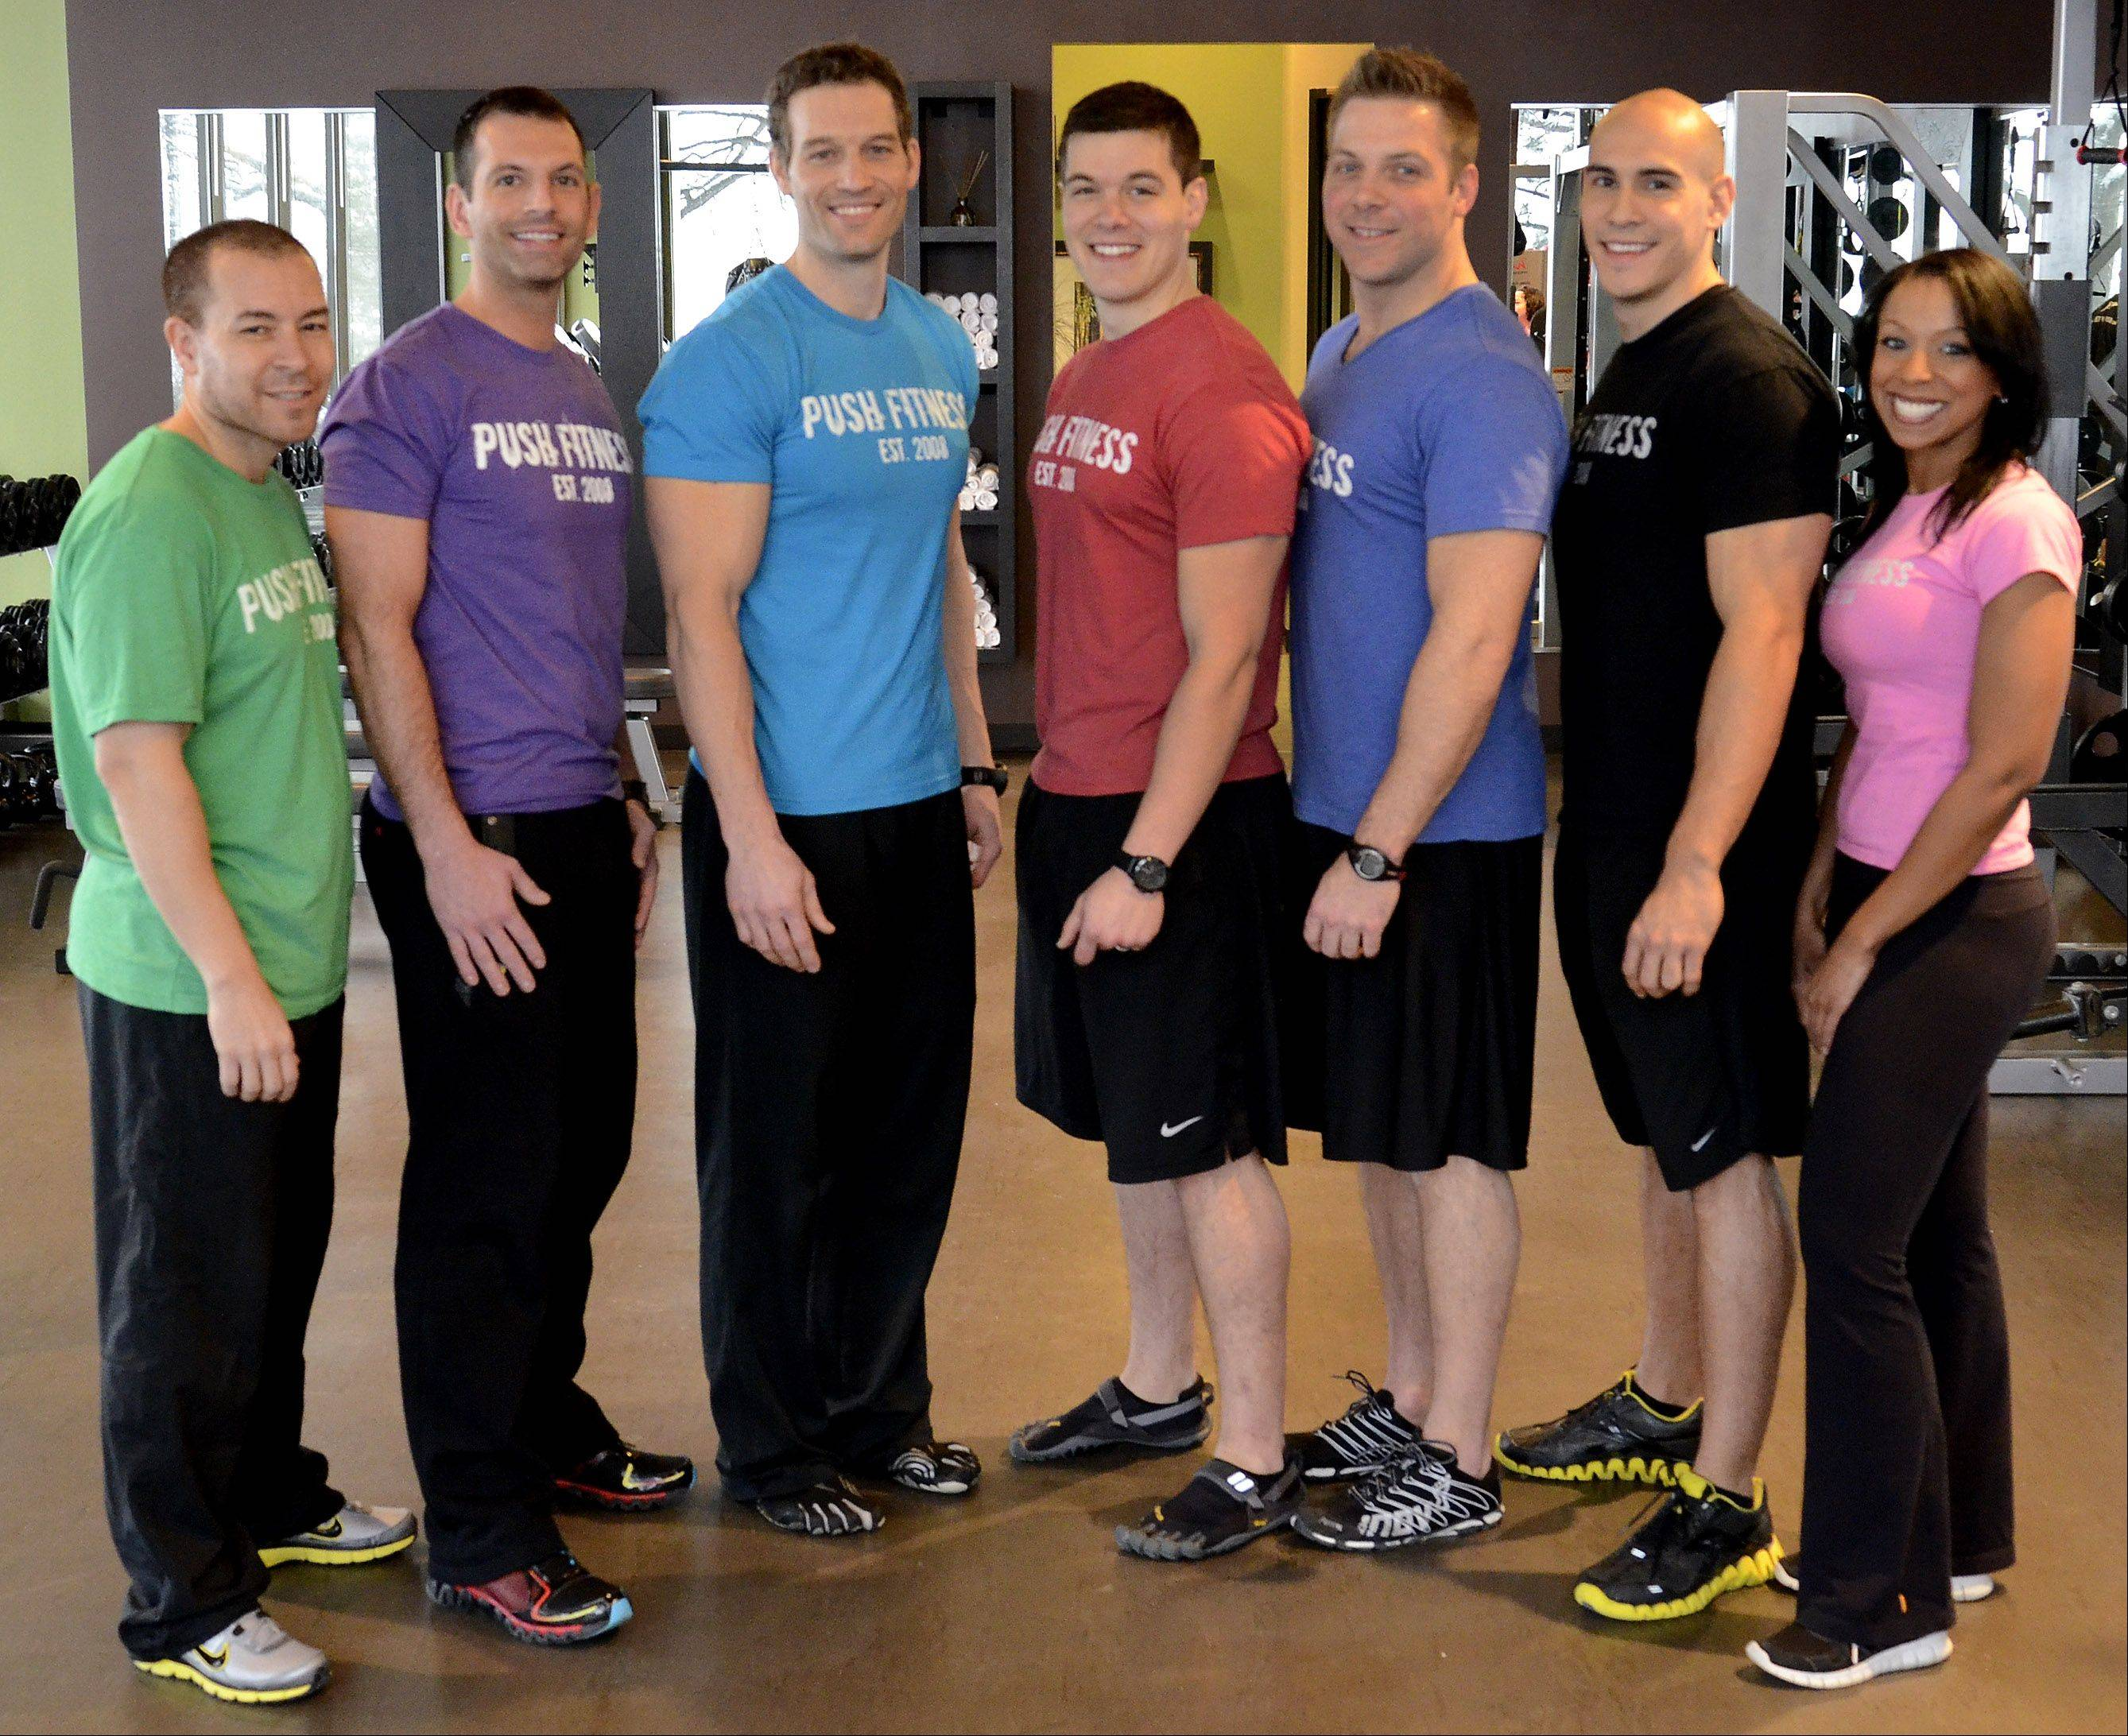 Training this year's Fittest Losers are Push Fitness personal trainers: Tony Figueroa, left, Steve Amsden, Joshua Steckler, Wade Merrill, Brodie Medlock, Tony Rinehart and Michelle Amsden.